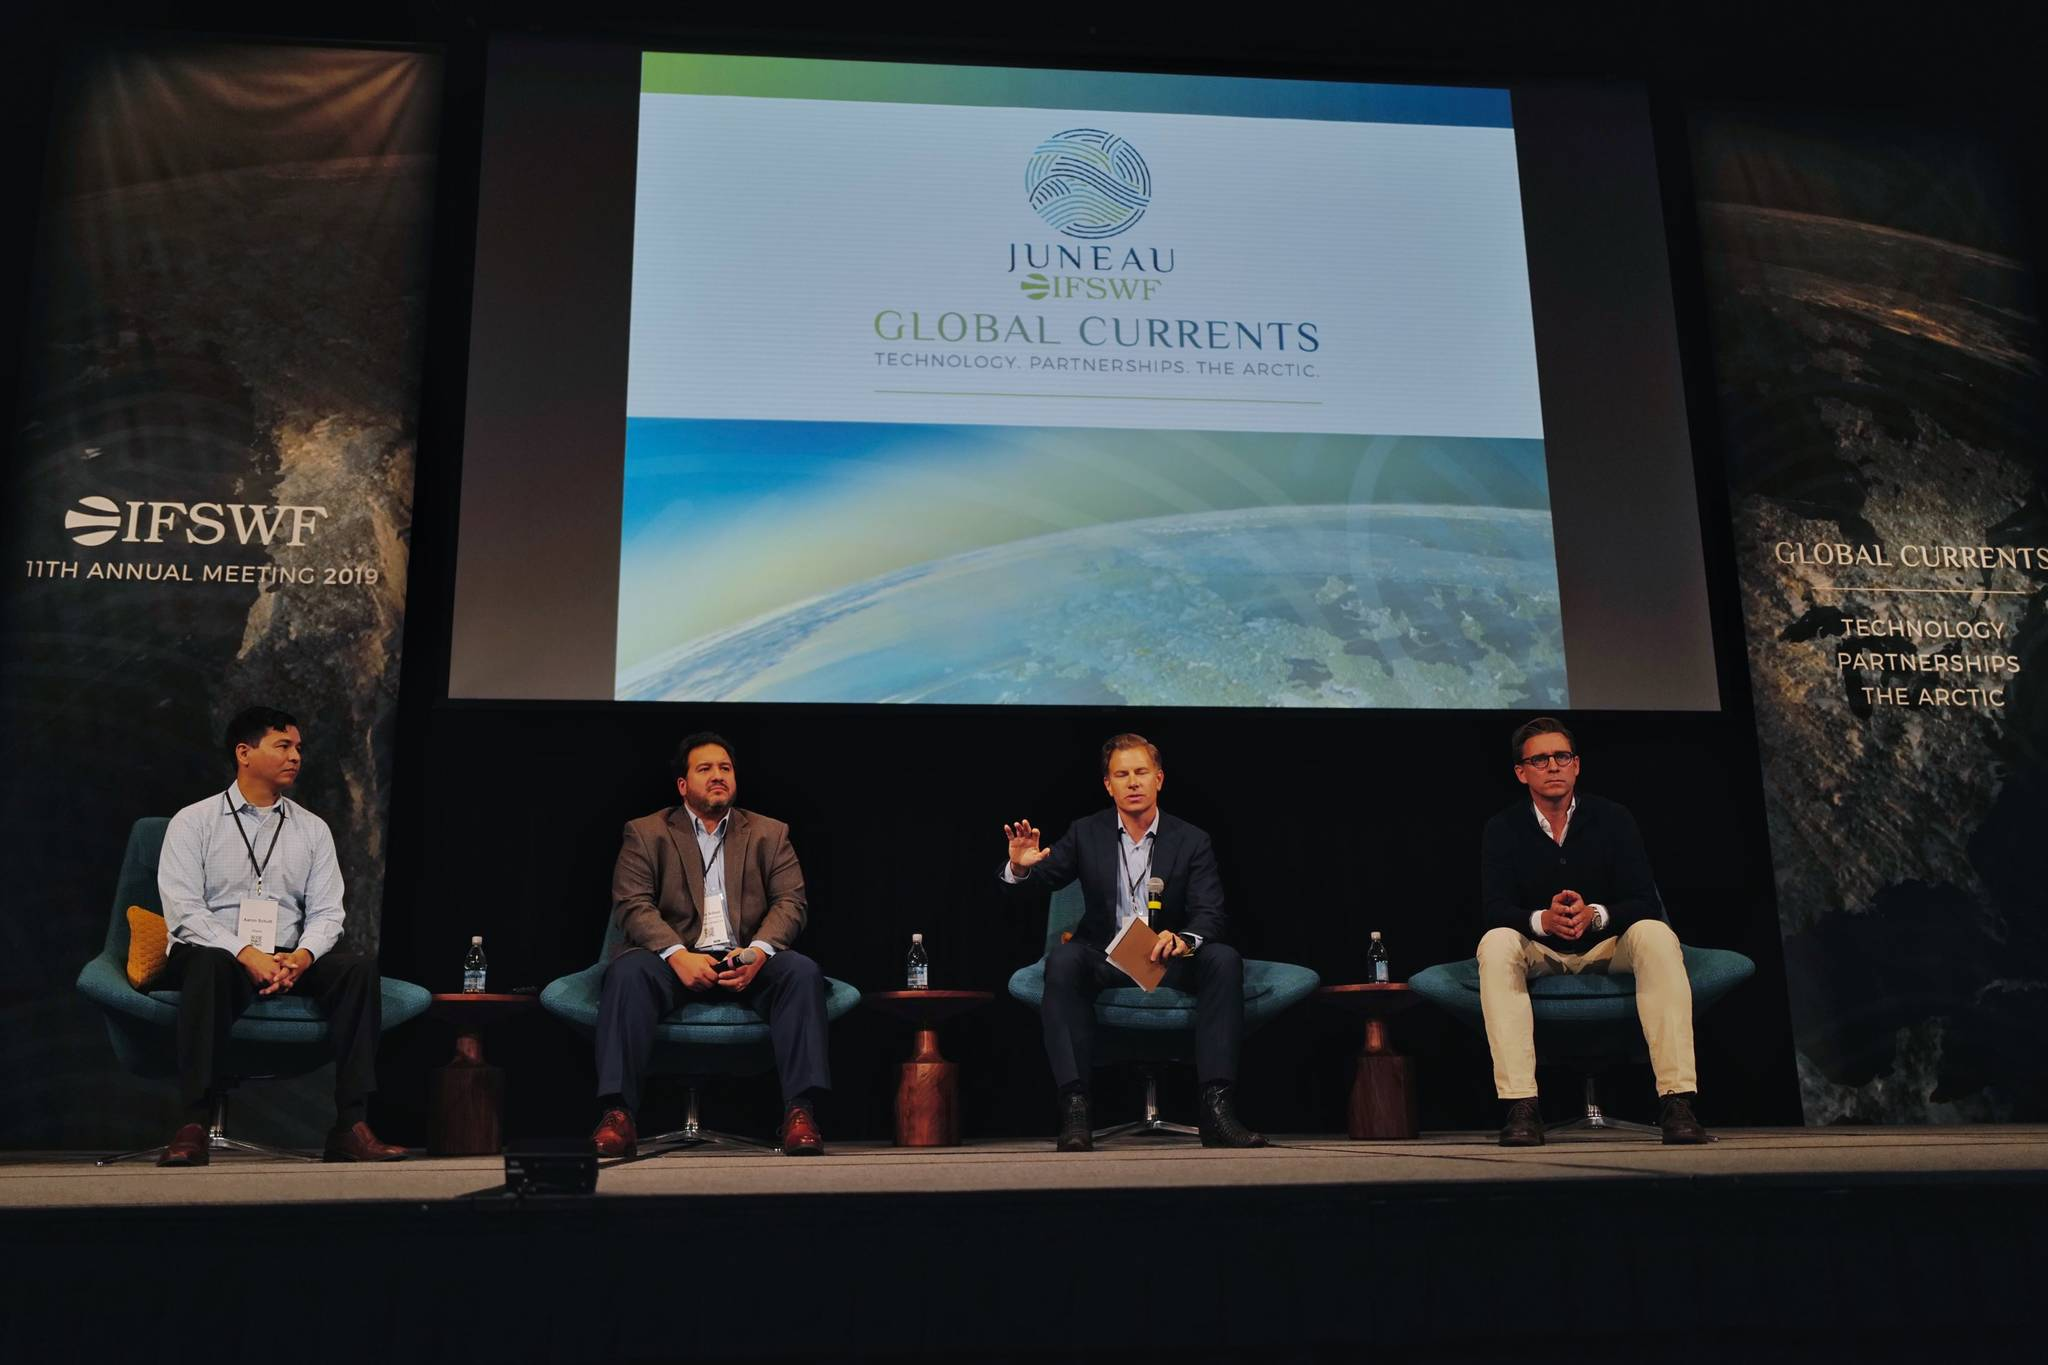 Erik Bethel, U.S. Director of the World Bank, second from right, moderates a panel on the Future of the Arctic with Aaron Schutt, President and CEO of Doyon Limit, left, Damian Bilbao, Vice President of Commercial Ventures for BP Alaska, center and Nils Bolmstrand, CEO of Nordea Asset Management, during the annual meeting of the International Forum of Sovereign Wealth Funds at Centennial Hall on Thursday, Sept. 12, 2019. (Michael Penn | Juneau Empire)